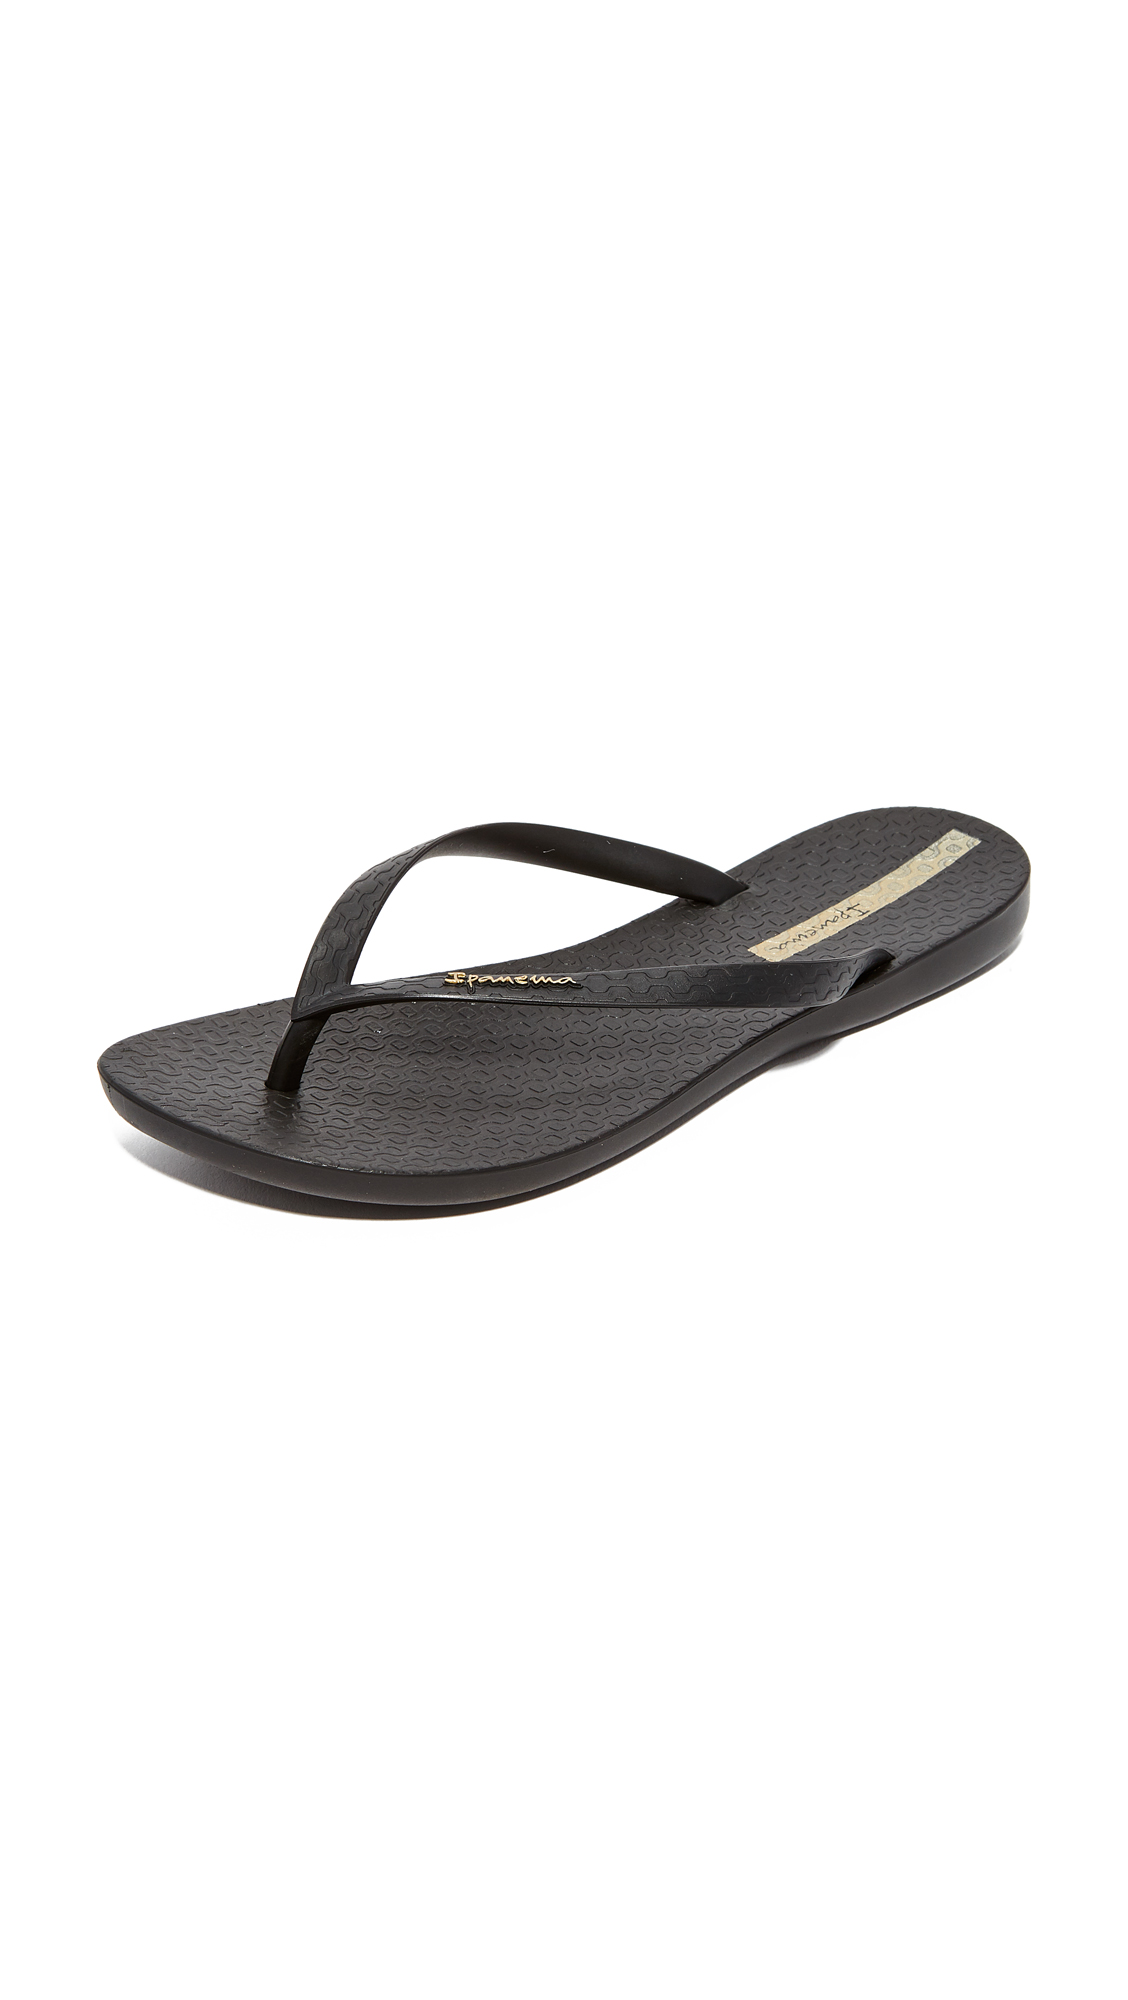 Ipanema Wave Essence Flip Flops Shoes Online Shopping At